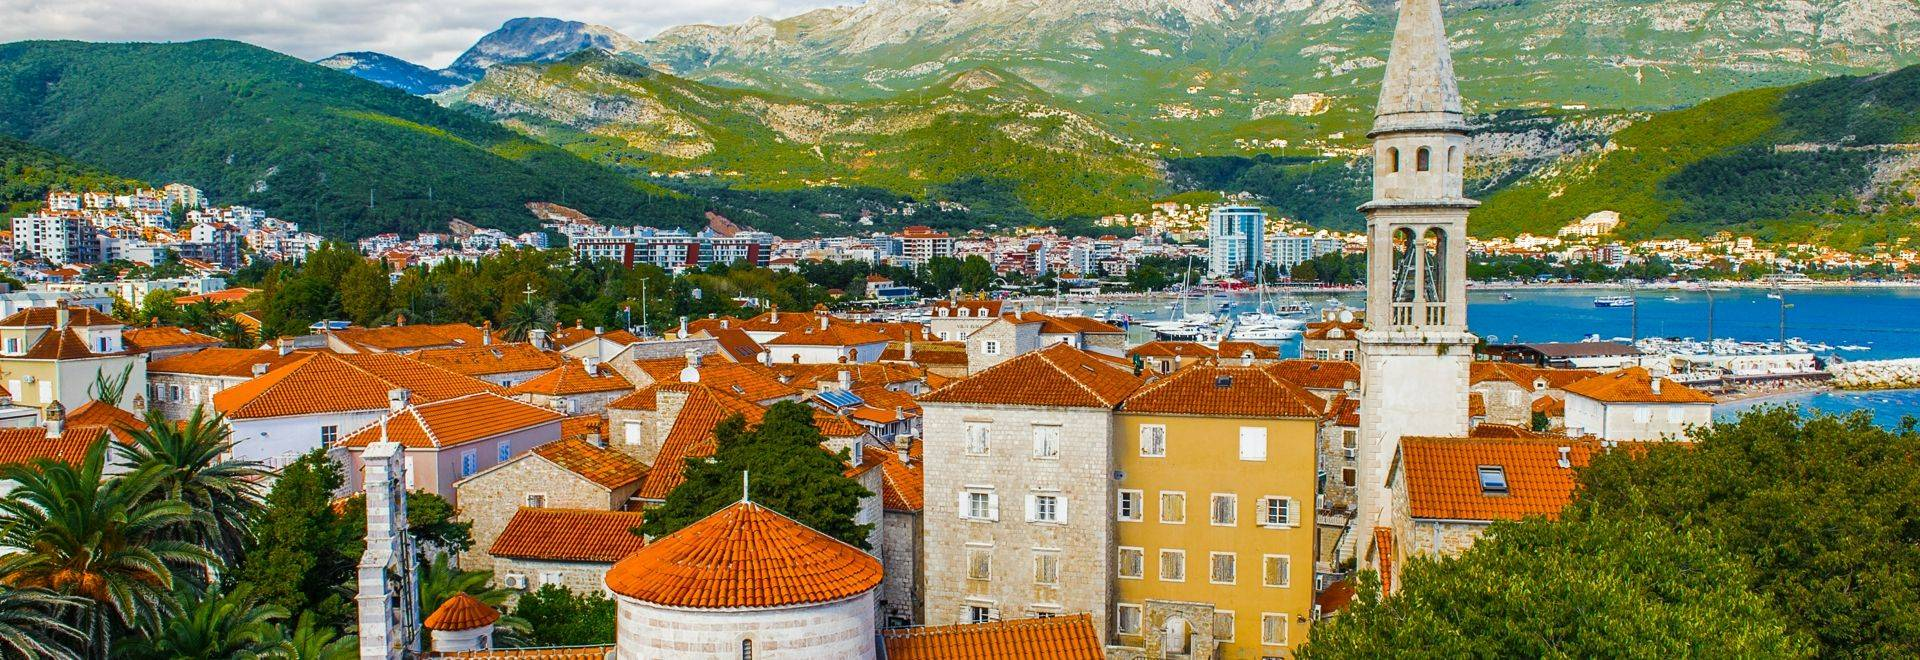 Shutterstock 158655266 Panorama Of The Old Town Of Budva